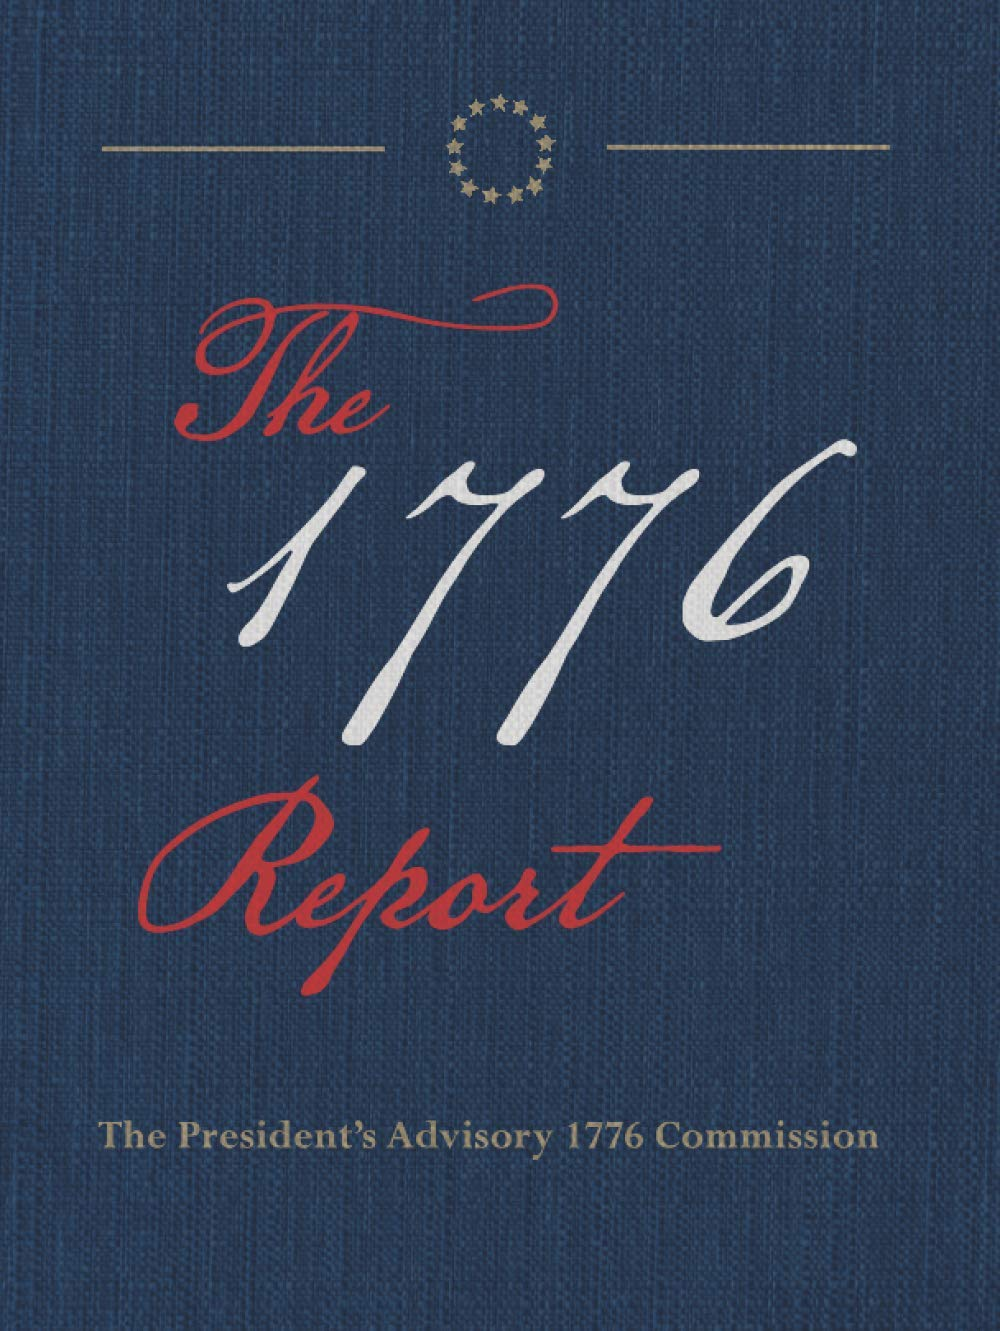 The 1776 Report: Collector's Edition: The President's Advisory 1776  Commission: 9798716362826: Amazon.com: Books